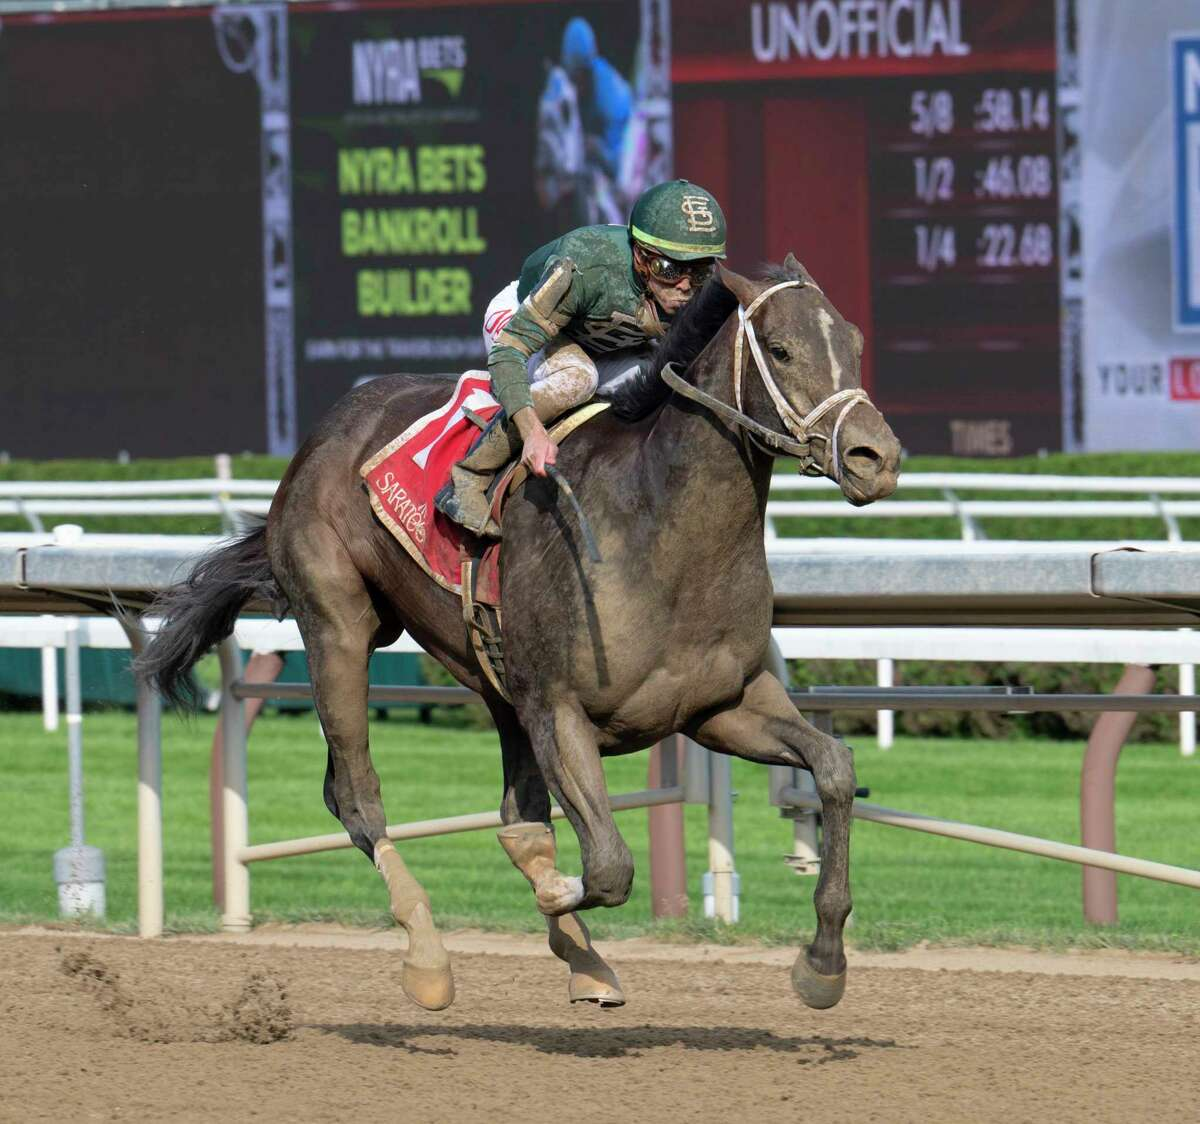 Wit, ridden by Irad Ortiz Jr., wins the Sanford Stakes at Saratoga Race Course on Saturday, July 17, 2021, in Saratoga Springs.